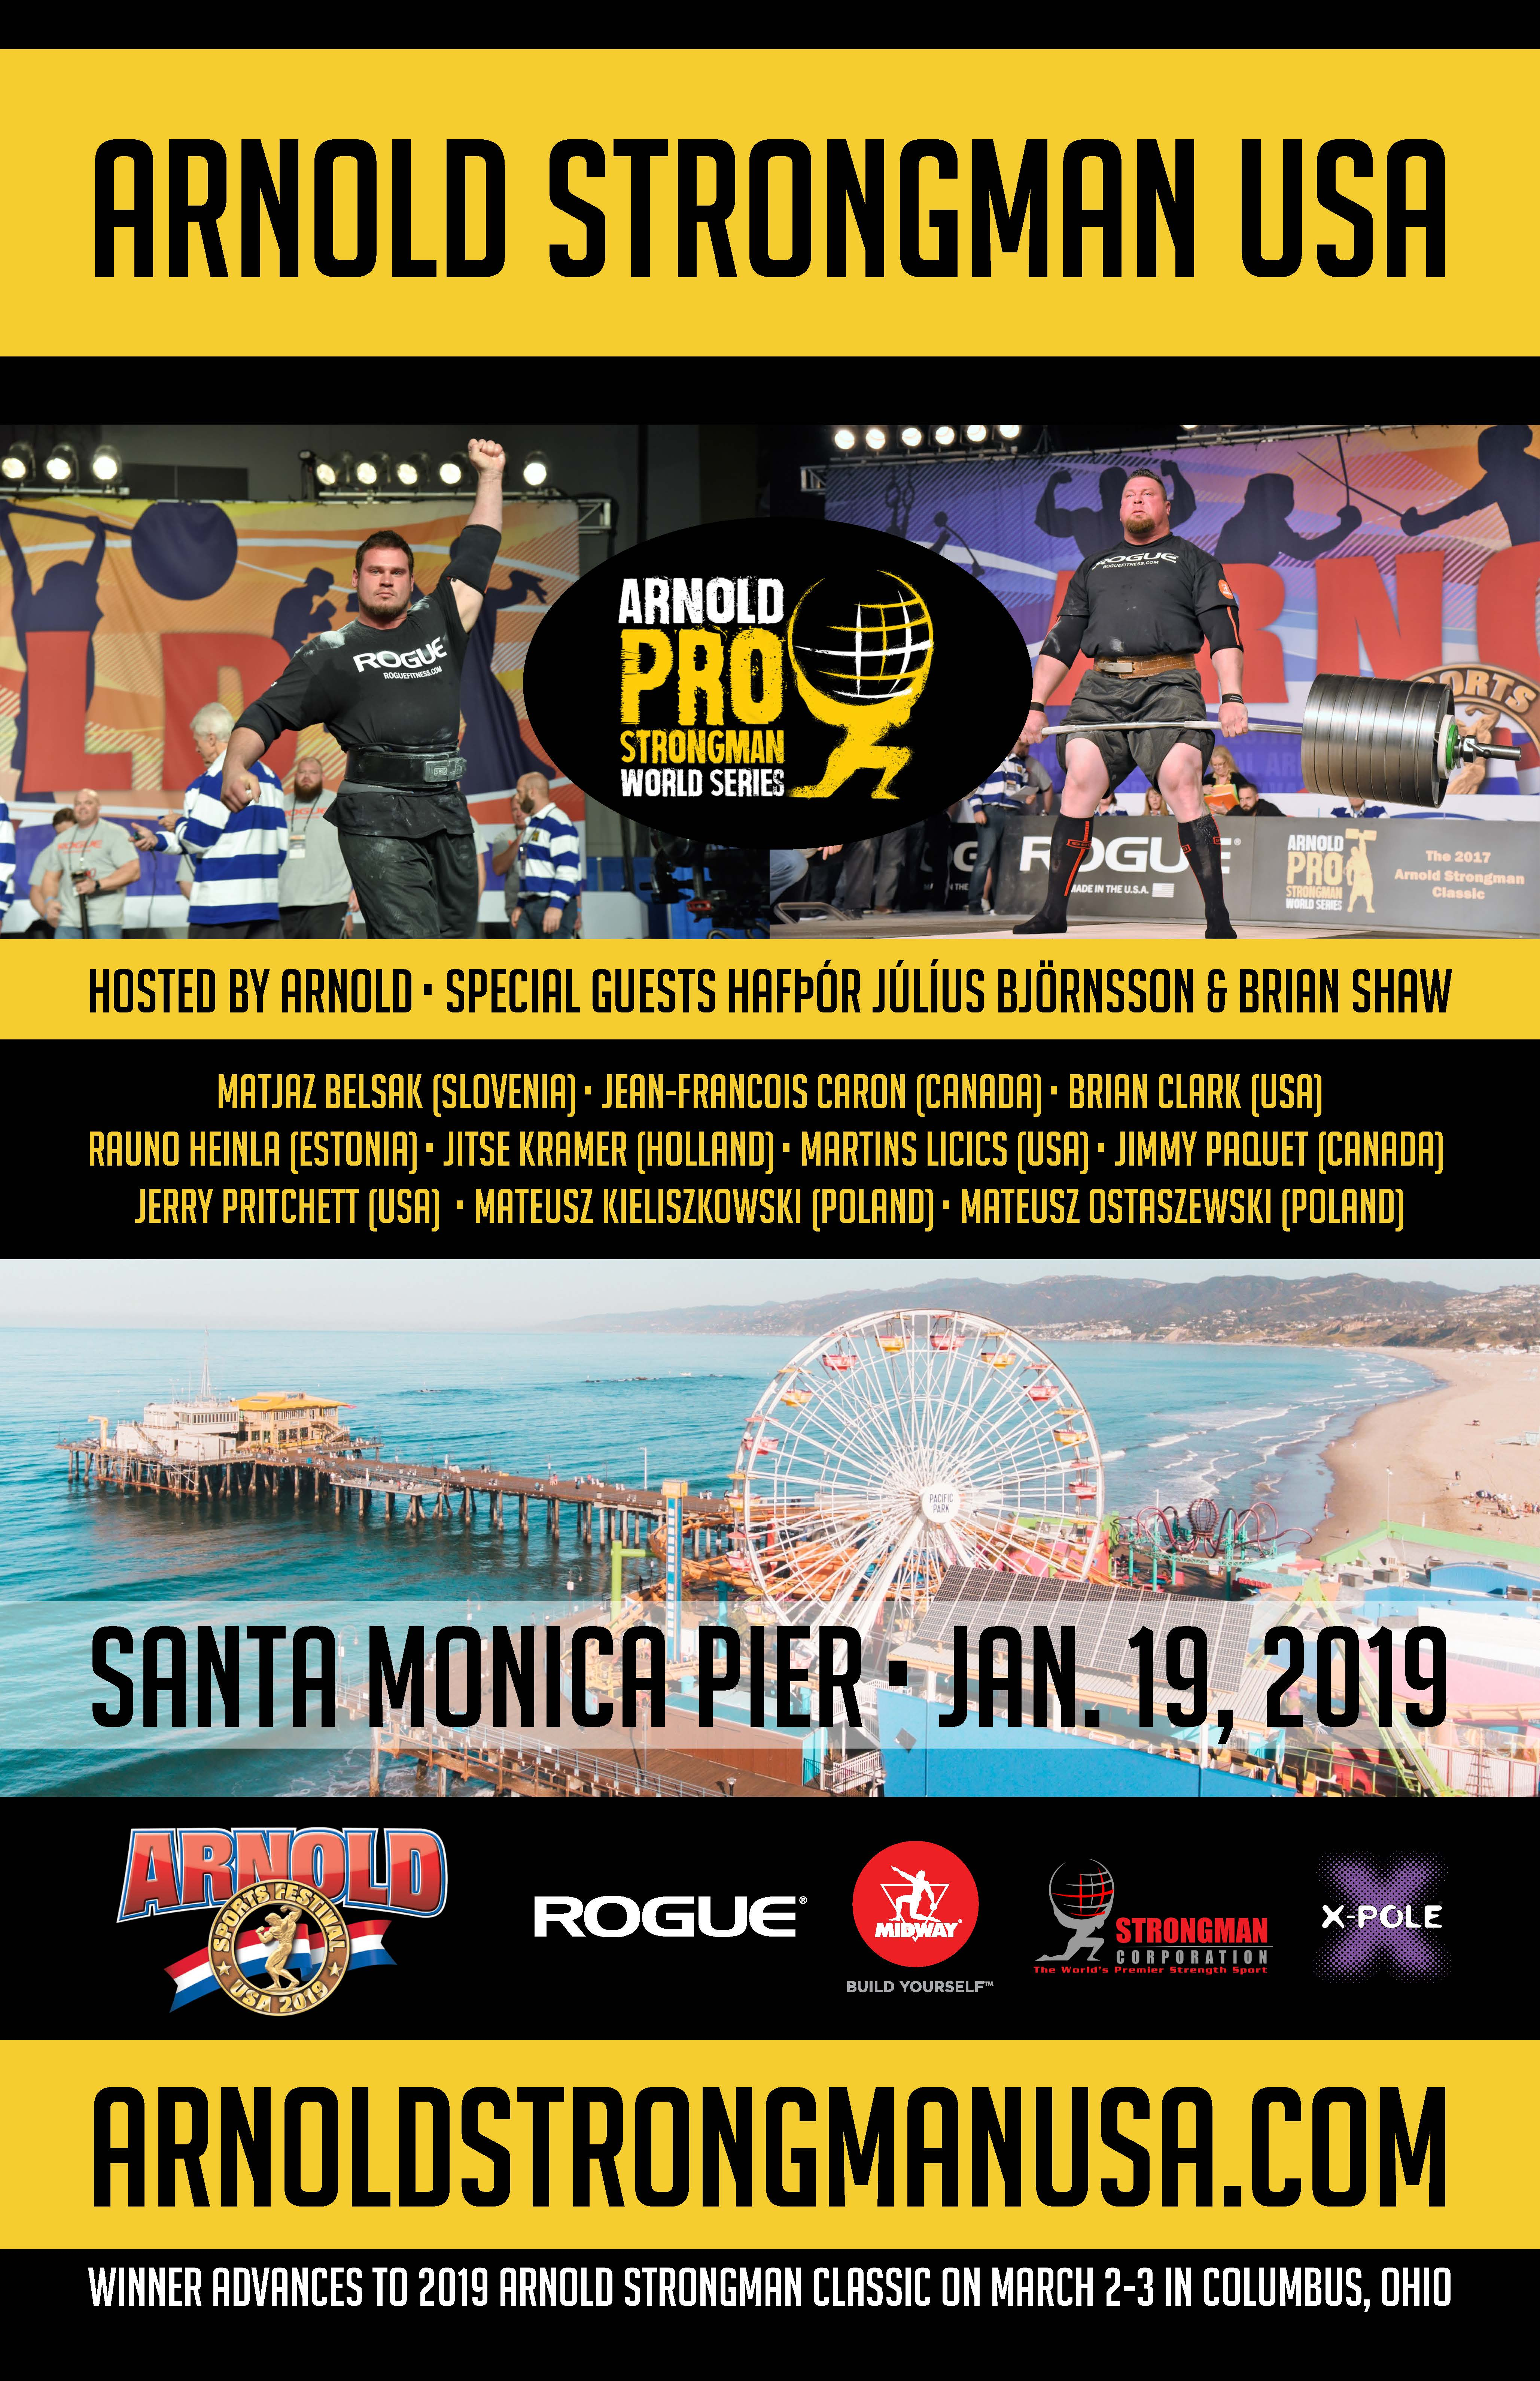 Arnold Pro Strongman World Series Held at Santa Monica Pier